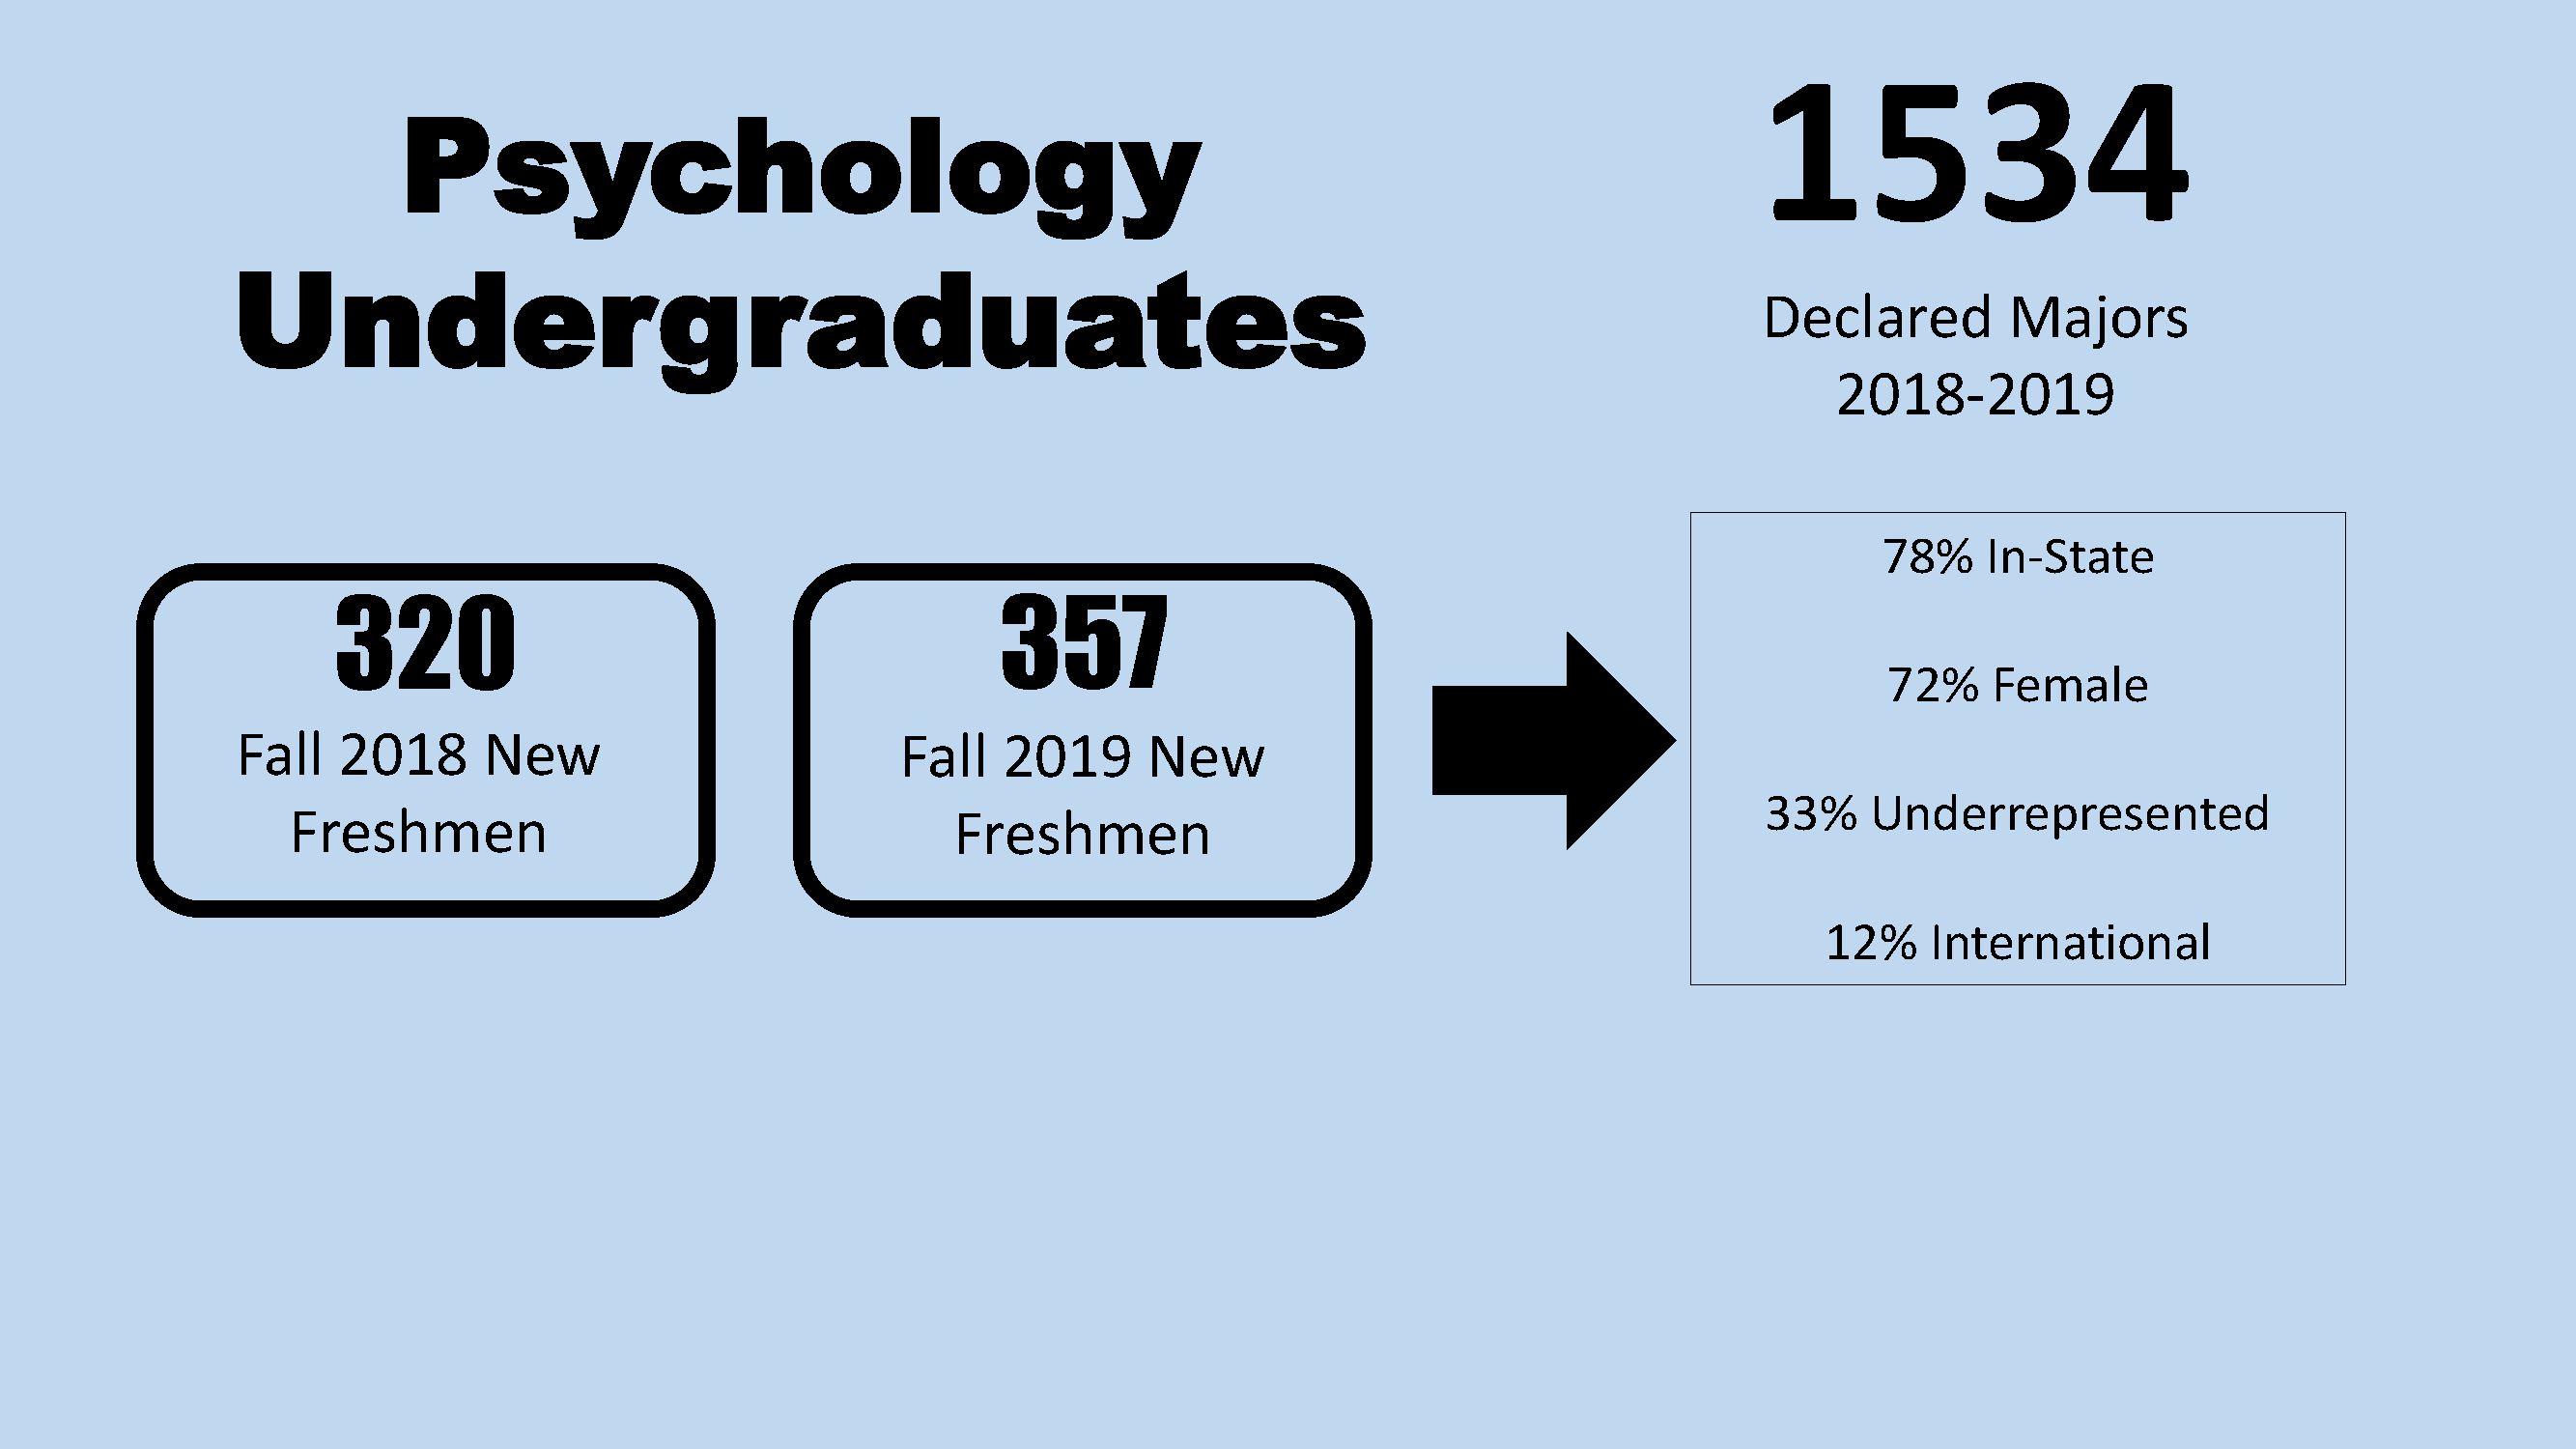 2018-2019 Psychology Undergraduate Pictograph